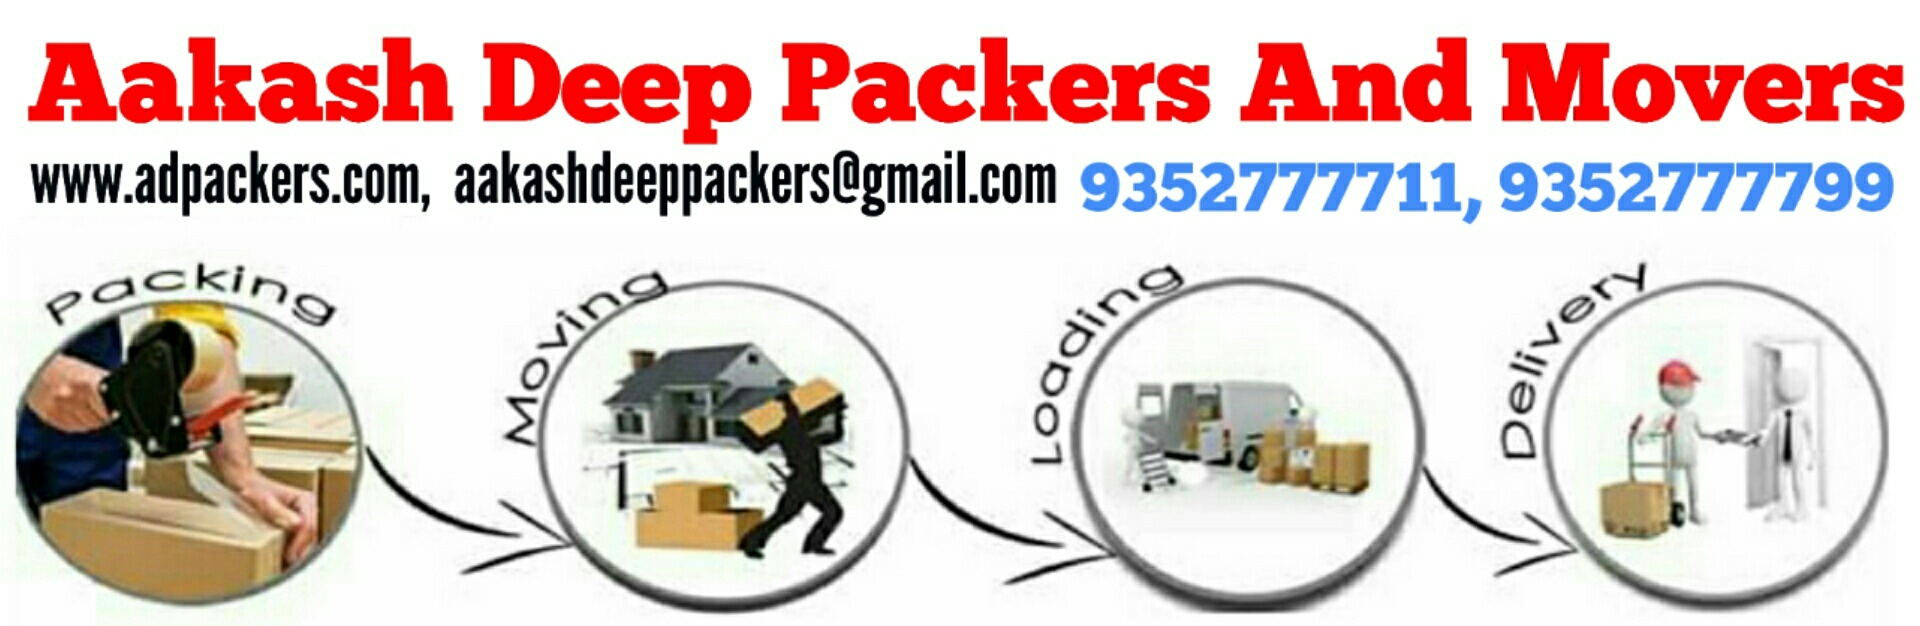 Packers And Movers in Ajmer, Movers And Packers in Ajmer, Home & Office Relocation Services in Ajmer, Local House Hold Goods Shifting Service in Ajmer, Aakash Deep Packers And Movers in Ajmer